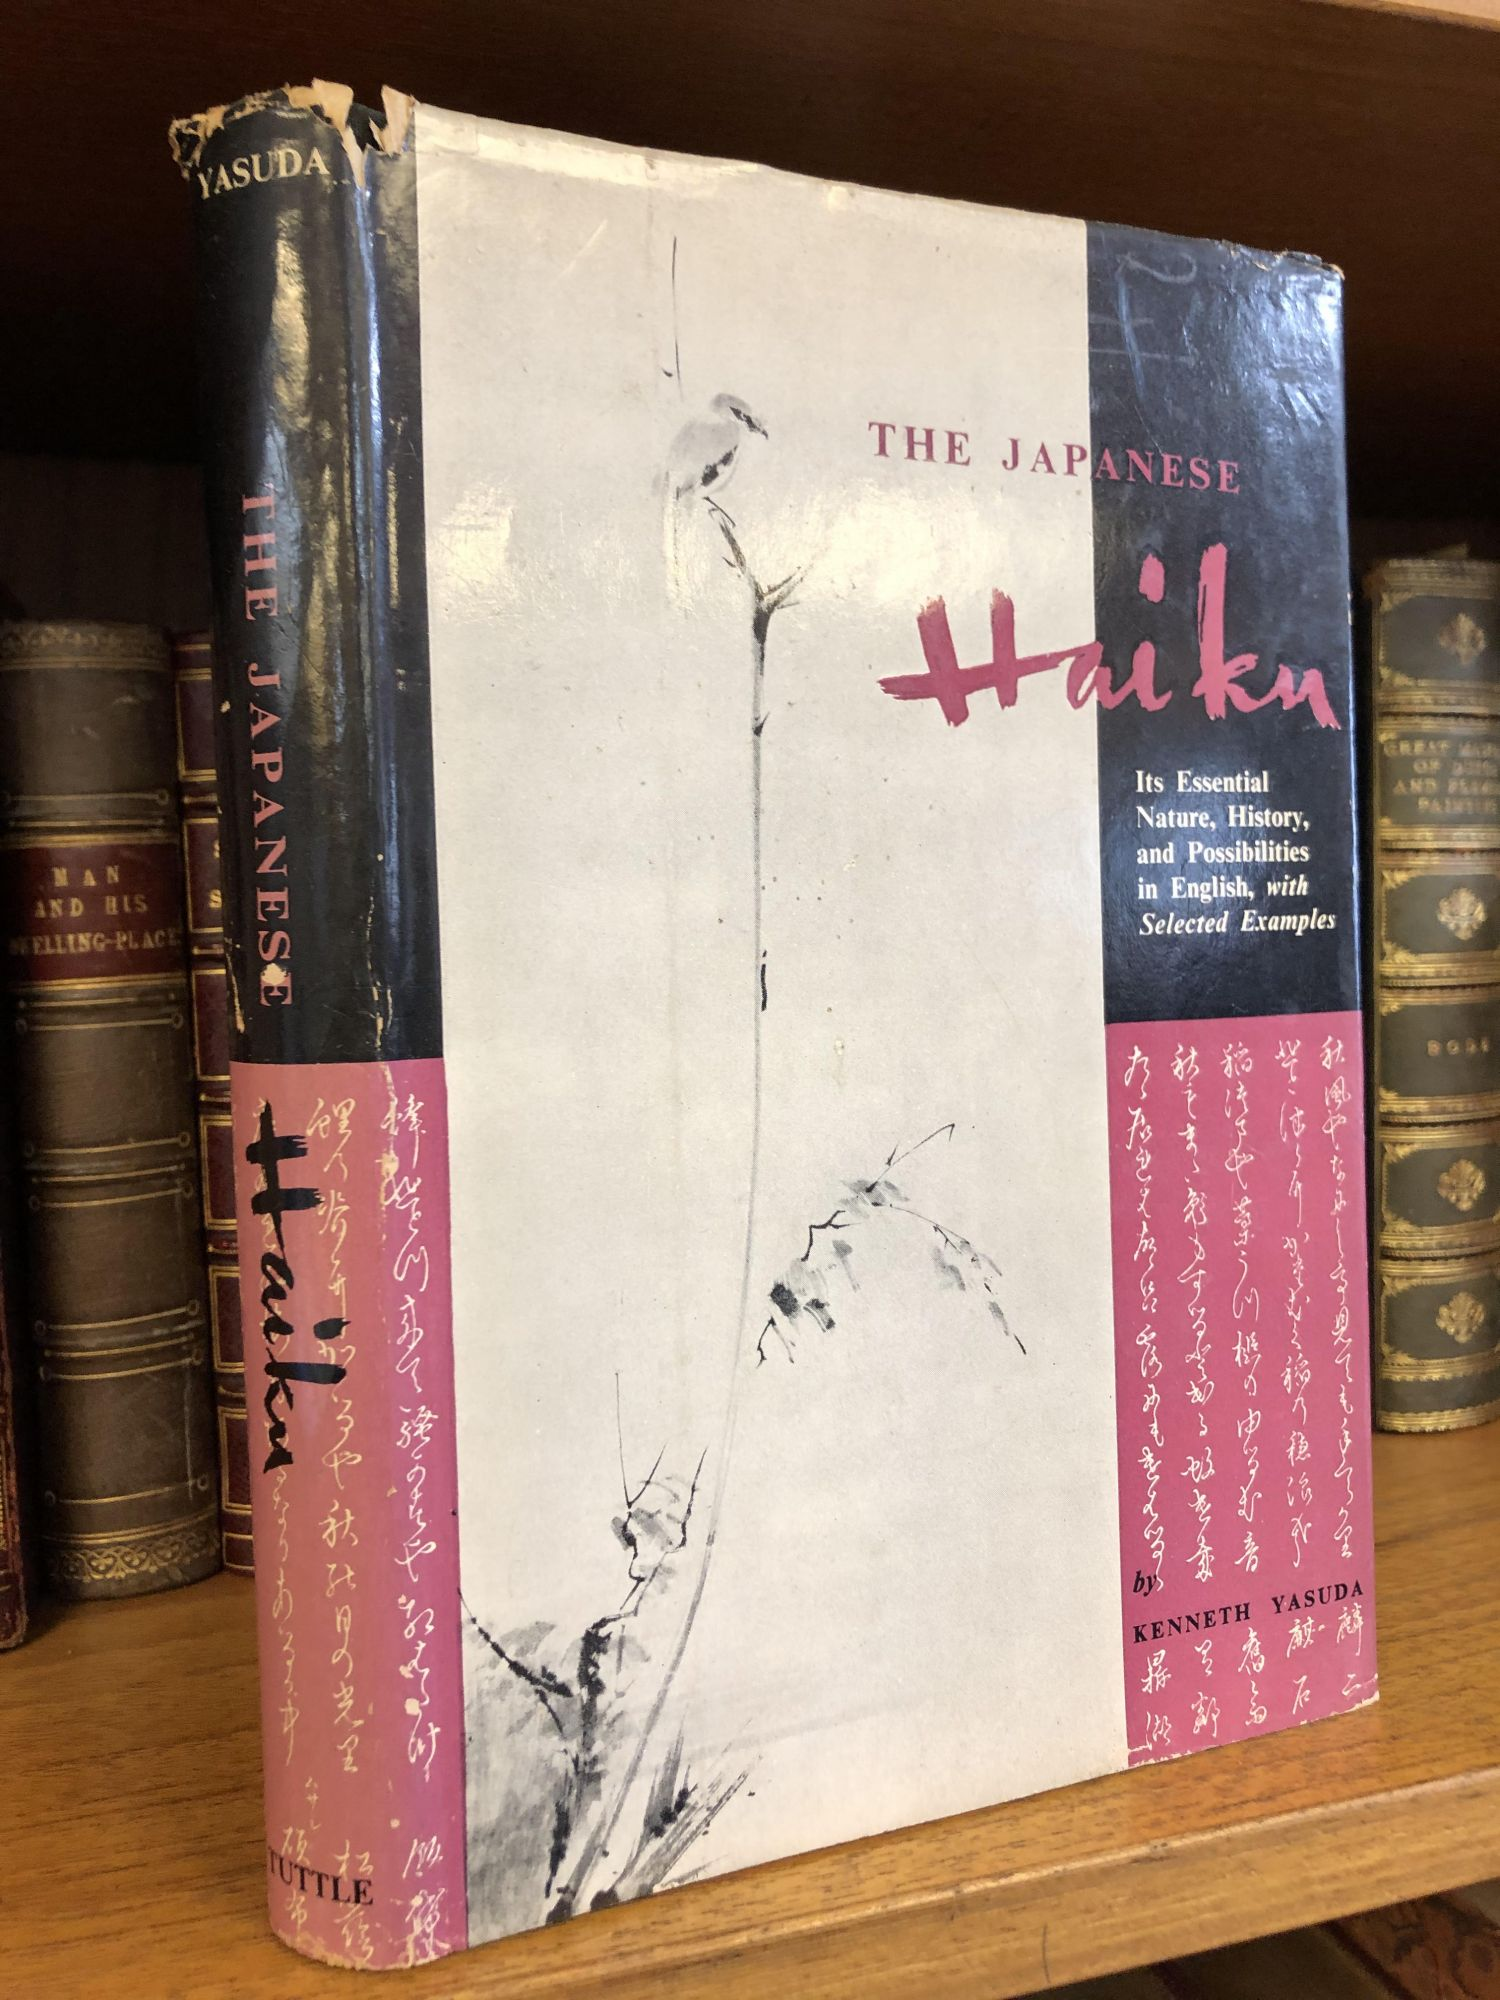 THE JAPANESE HAIKU: ITS ESSENTIAL NATURE, HISTORY, AND POSSIBILITIES IN ENGLISH, WITH SELECTED EXAMPLES. Kenneth Yasuda.